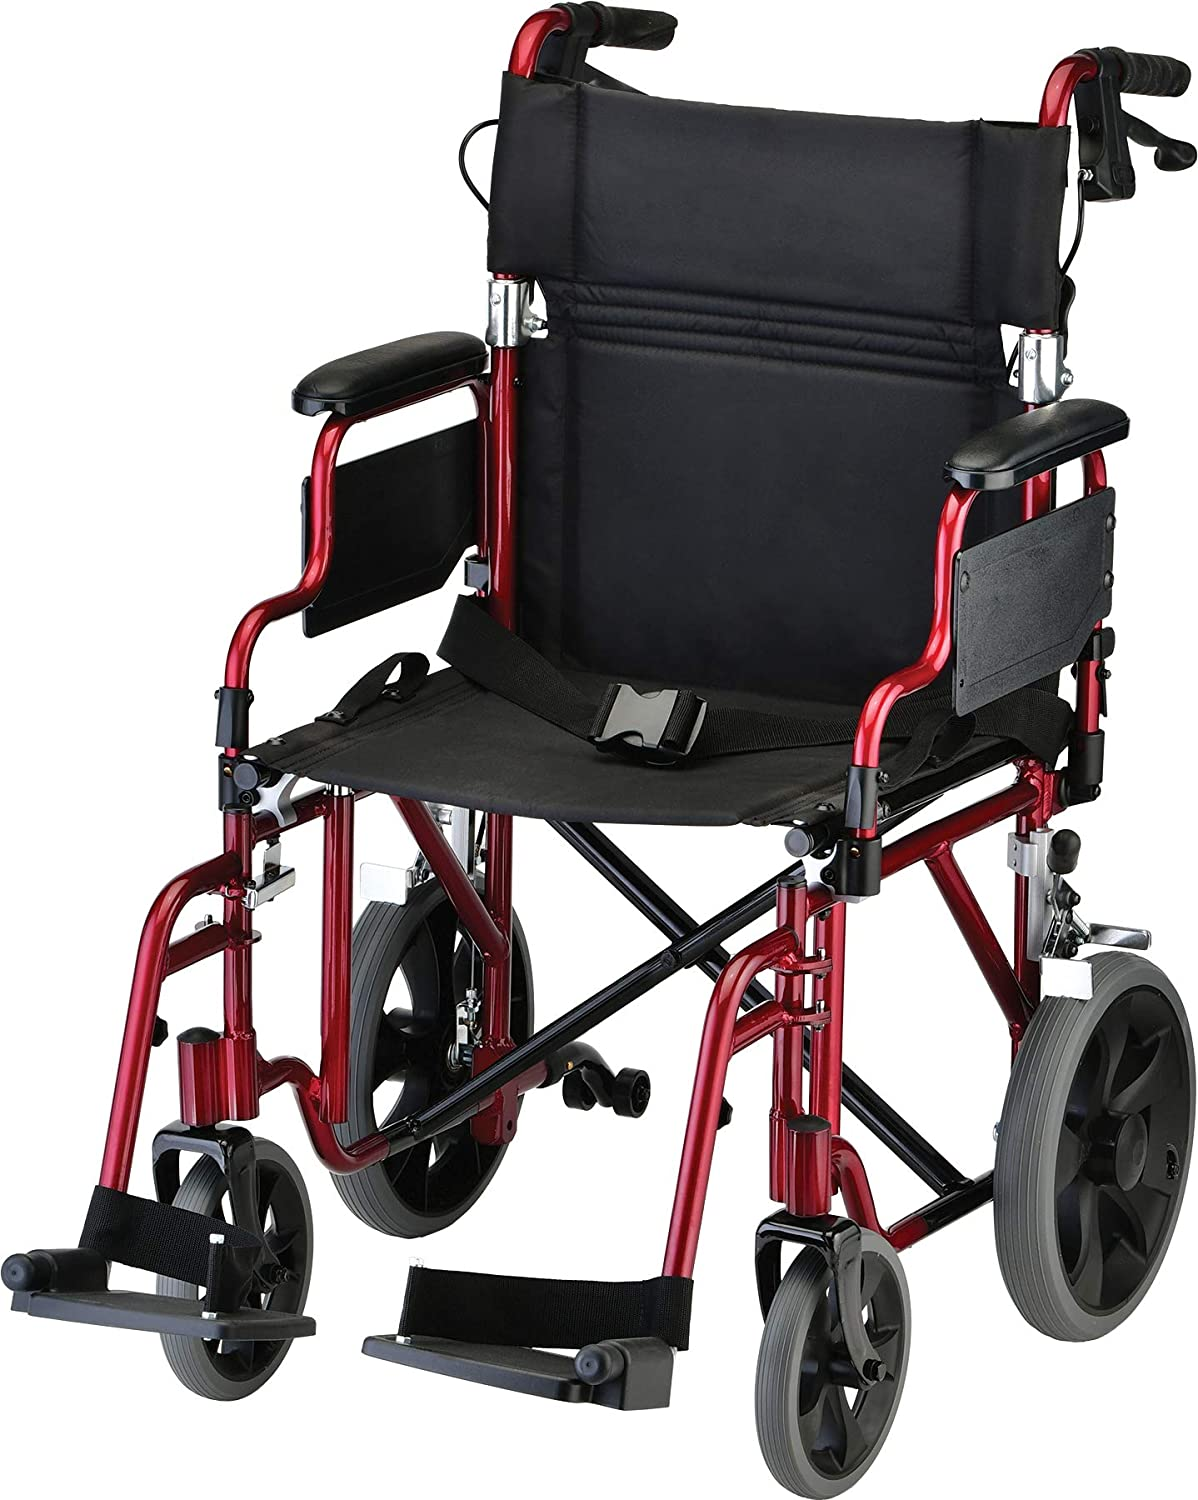 """NOVA Lightweight Transport Chair with Locking Hand Brakes, 12"""" Rear Wheels, Removable & Flip Up Arms for Easy Transfer, Anti-Tippers Included, Red: Health & Personal Care"""